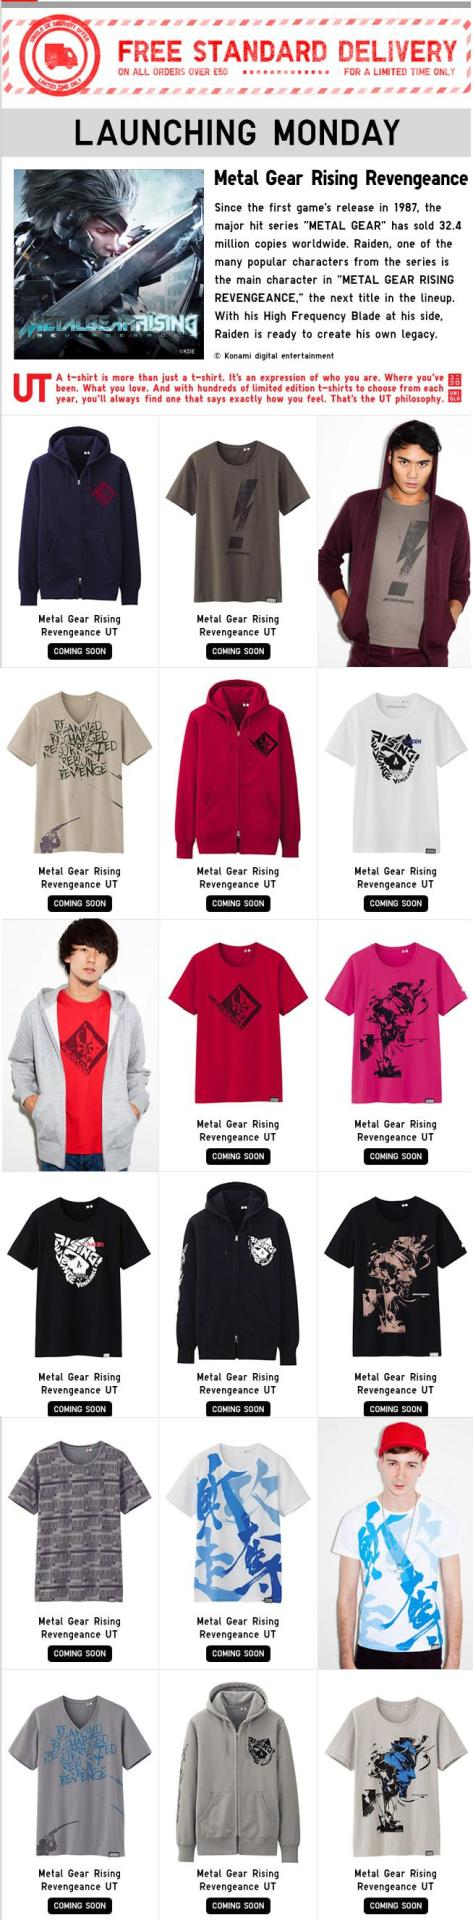 Metal Gear Rising Shirts From UNIQLO Popular Japanese clothing retailer UNIQLO are launching a Metal Gear Rising line on February 18th to celebrate the release of the game. These shirts are awesome. I love gaming shirts that are really nicely done. UNIQLO has previously done other really great Metal Gear Solid related clothing. However with their only US shop being in New York City and with many of their MGS shirts hard to find online, you may have a bit of trouble getting one. However, if the rumors are true, a UNIQLO store will soon be opening in Philly. Check It: The time we met Hideo Kojima at UNIQLO NYBuy It: Pre-order Metal Gear Rising